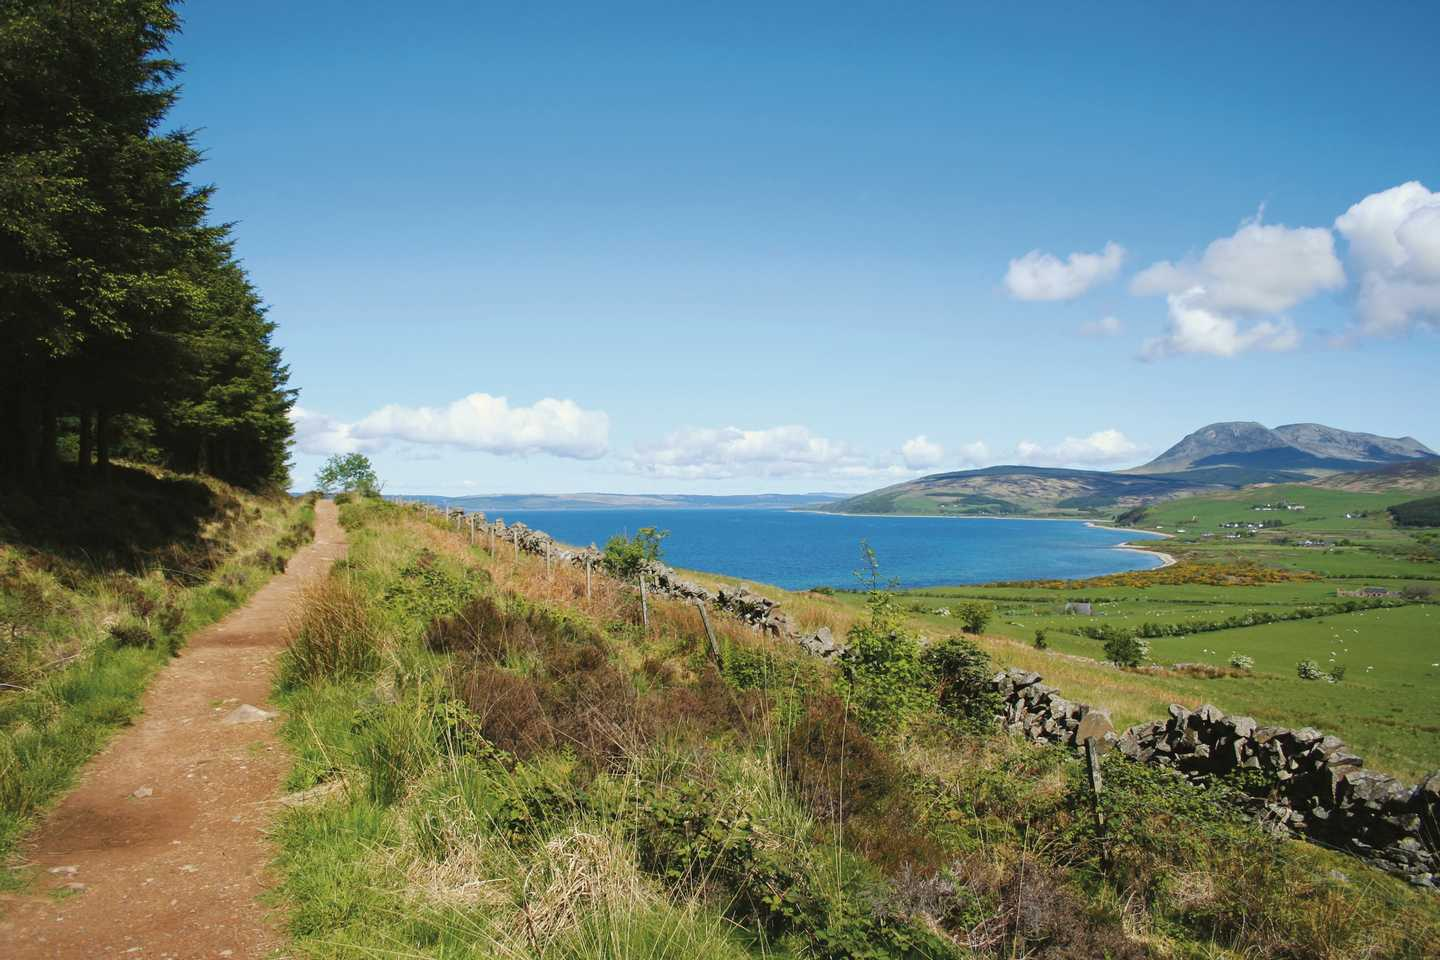 A scenic view of the Isle of Arran